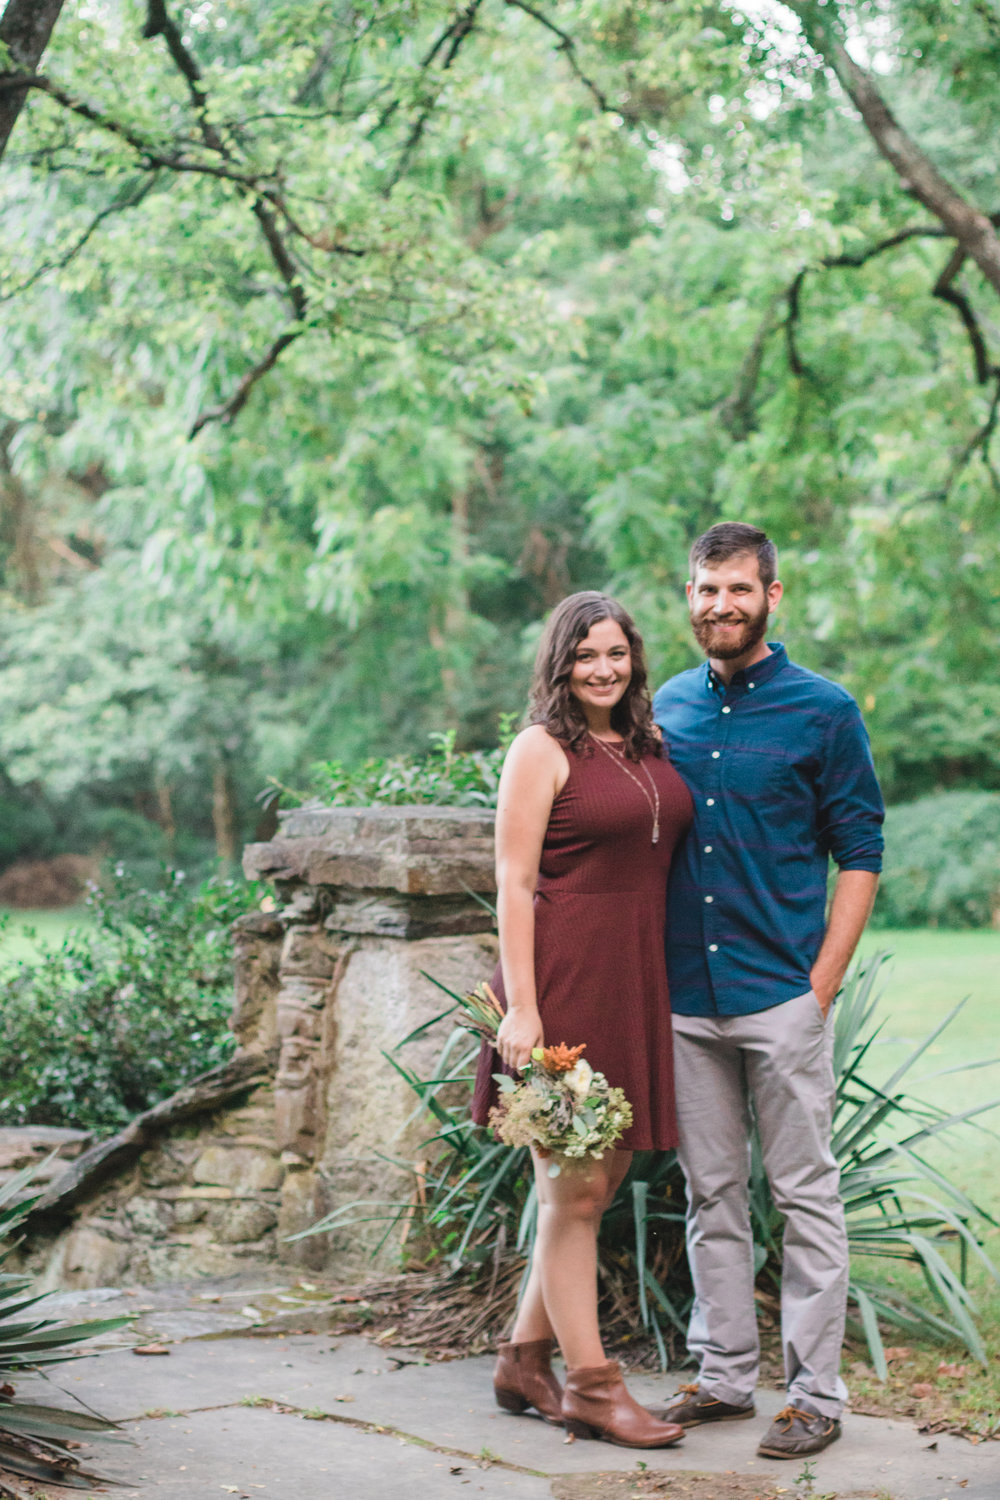 Three Years | Fall Couple Anniversary Photos by Savannah Smith Photography